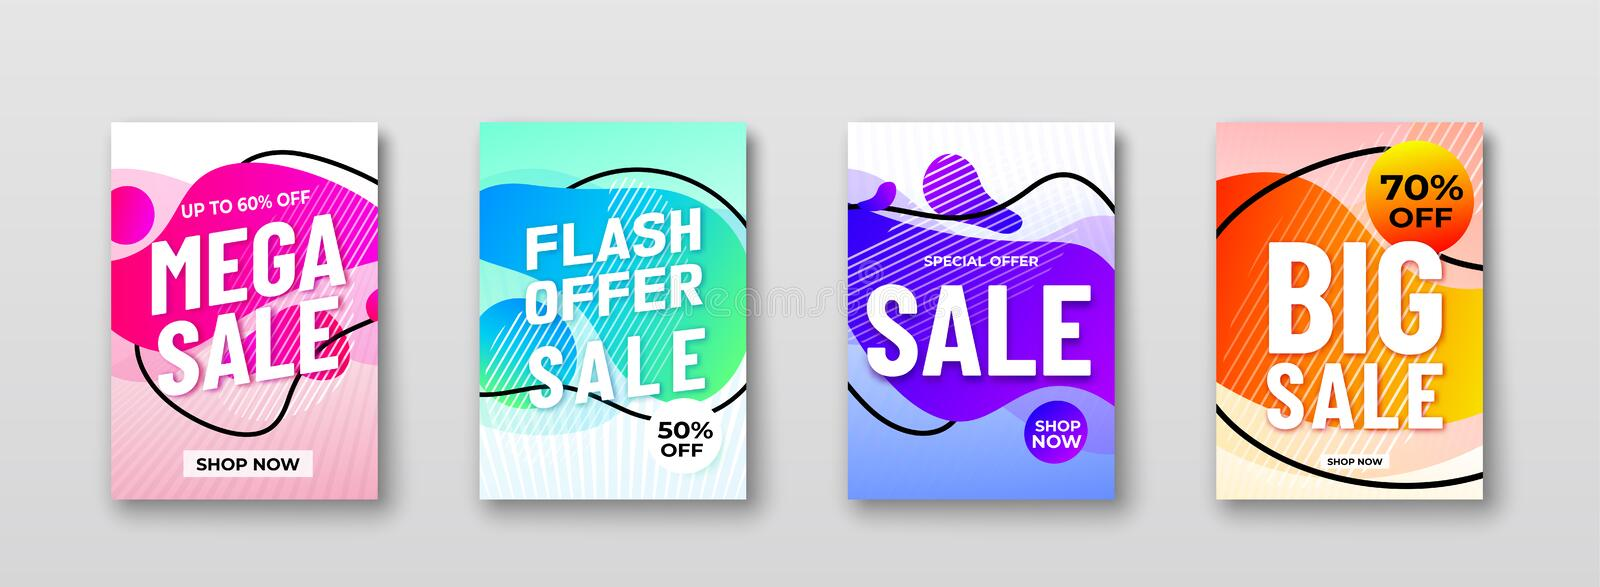 Sale abstract vector backgrounds with liquid gradient shapes, lines, promo text. Motion graphic fluid design for royalty free illustration